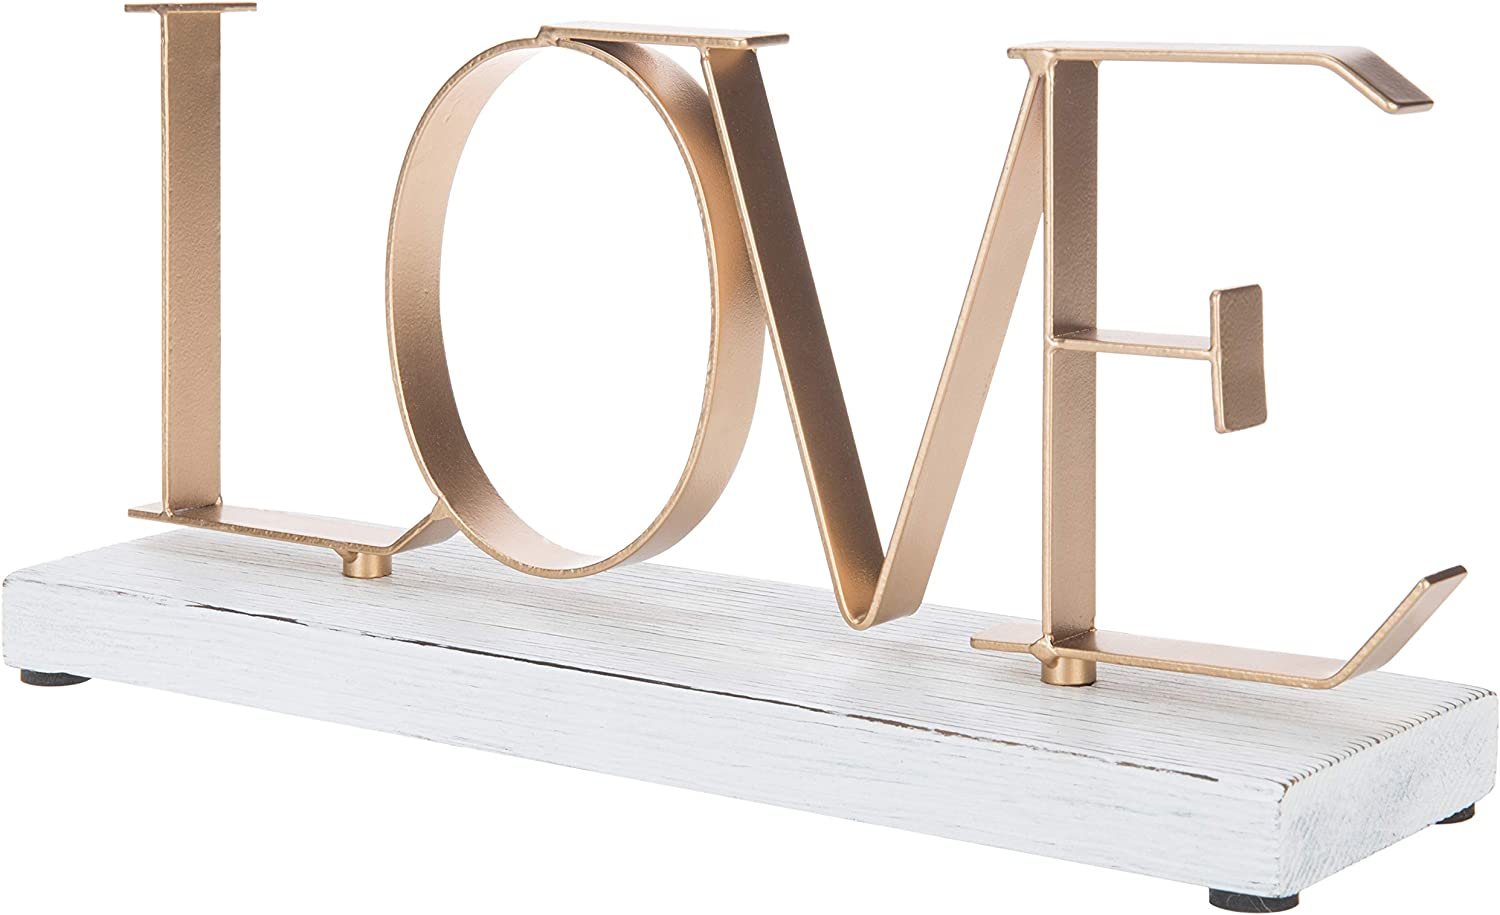 Max 82% OFF MyGift Love Metal Letters Genuine Free Shipping Decorative with Sign Wood Whitewashed